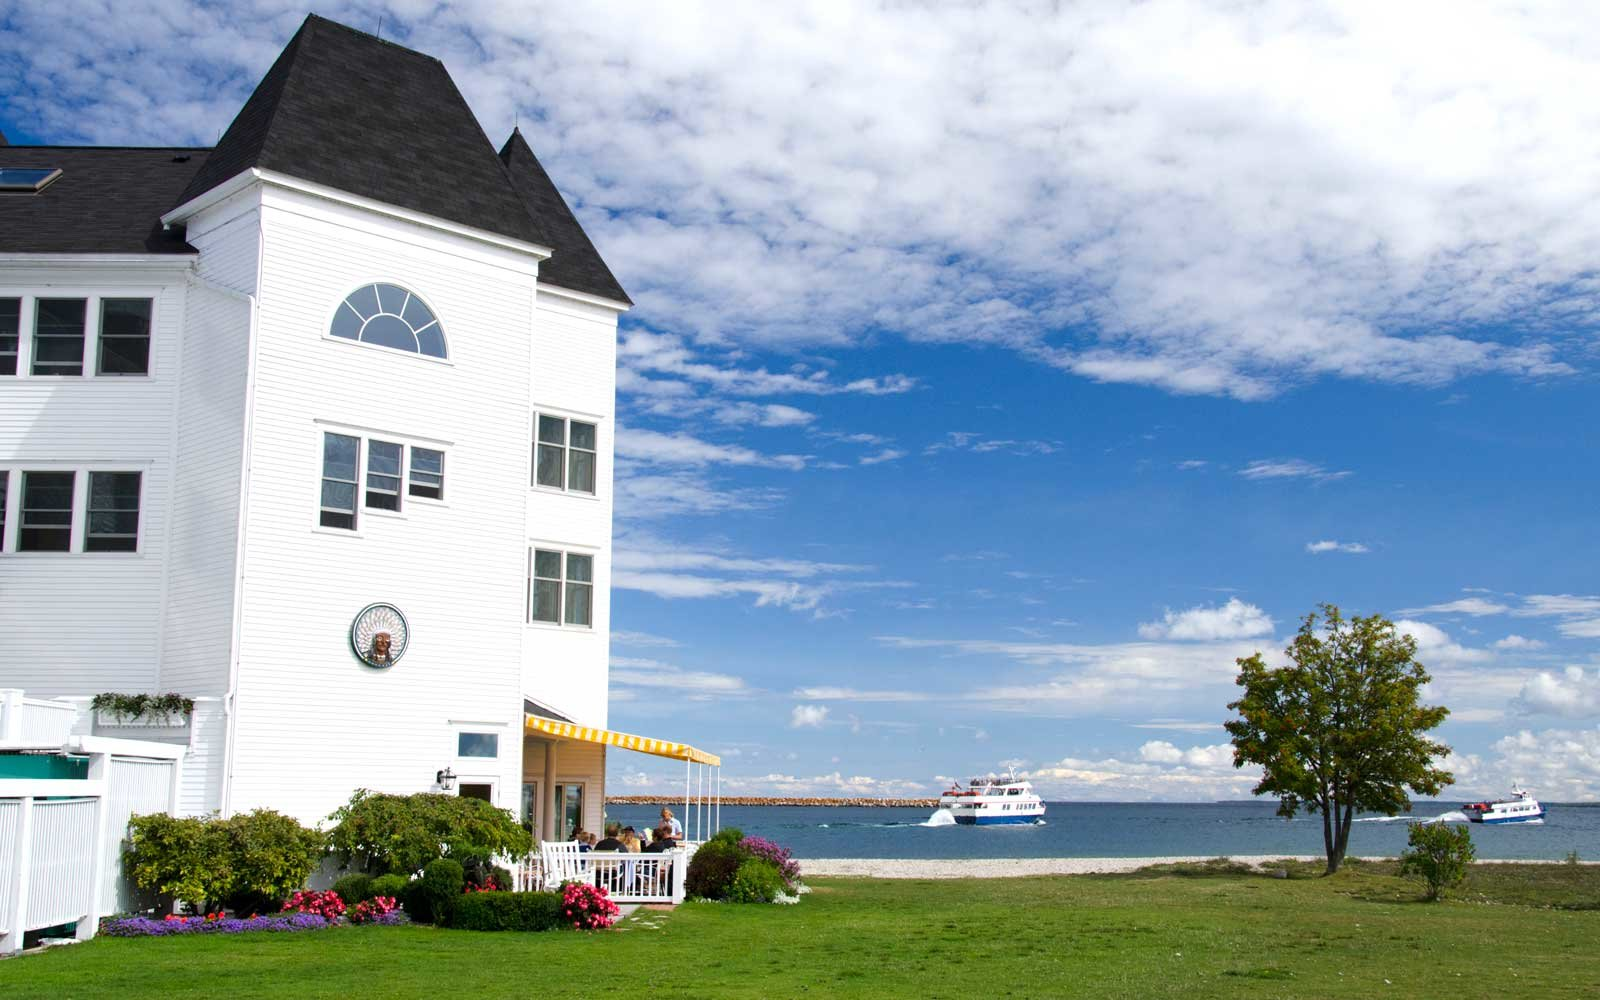 Exterior of the Hotel iroquois, on Mackinac Island